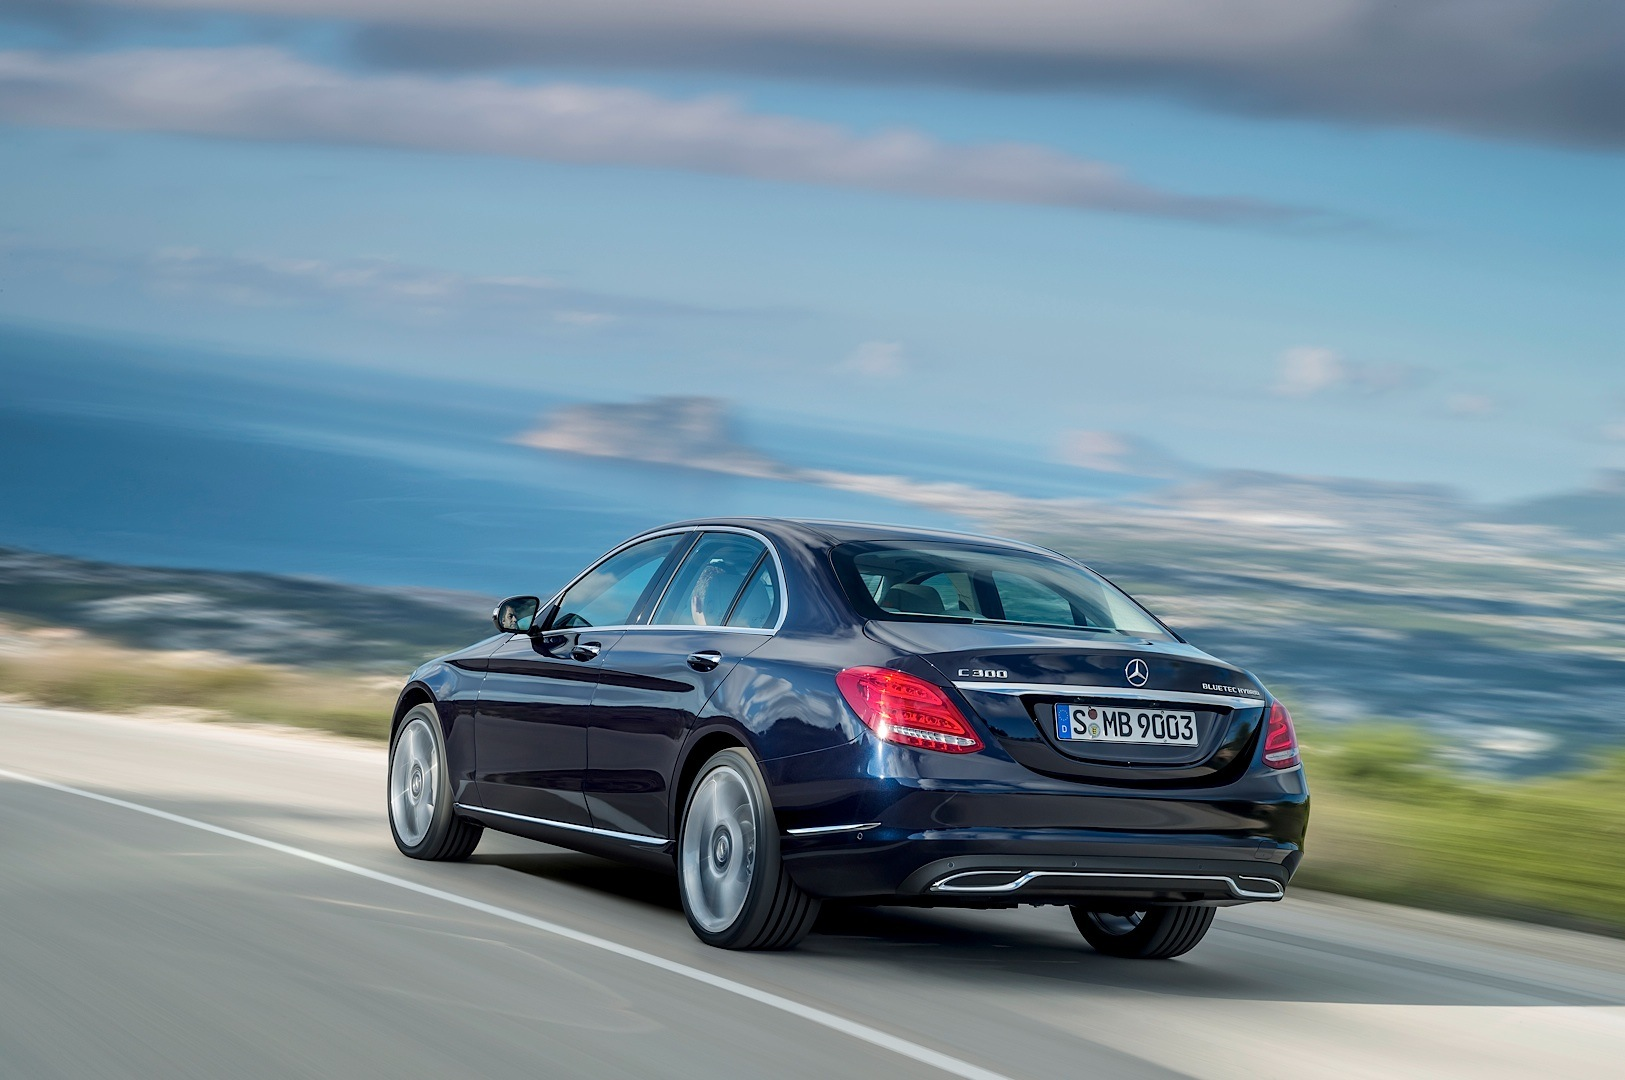 2015 mercedes benz c class w205 officially unveiled for Mercedes benz c